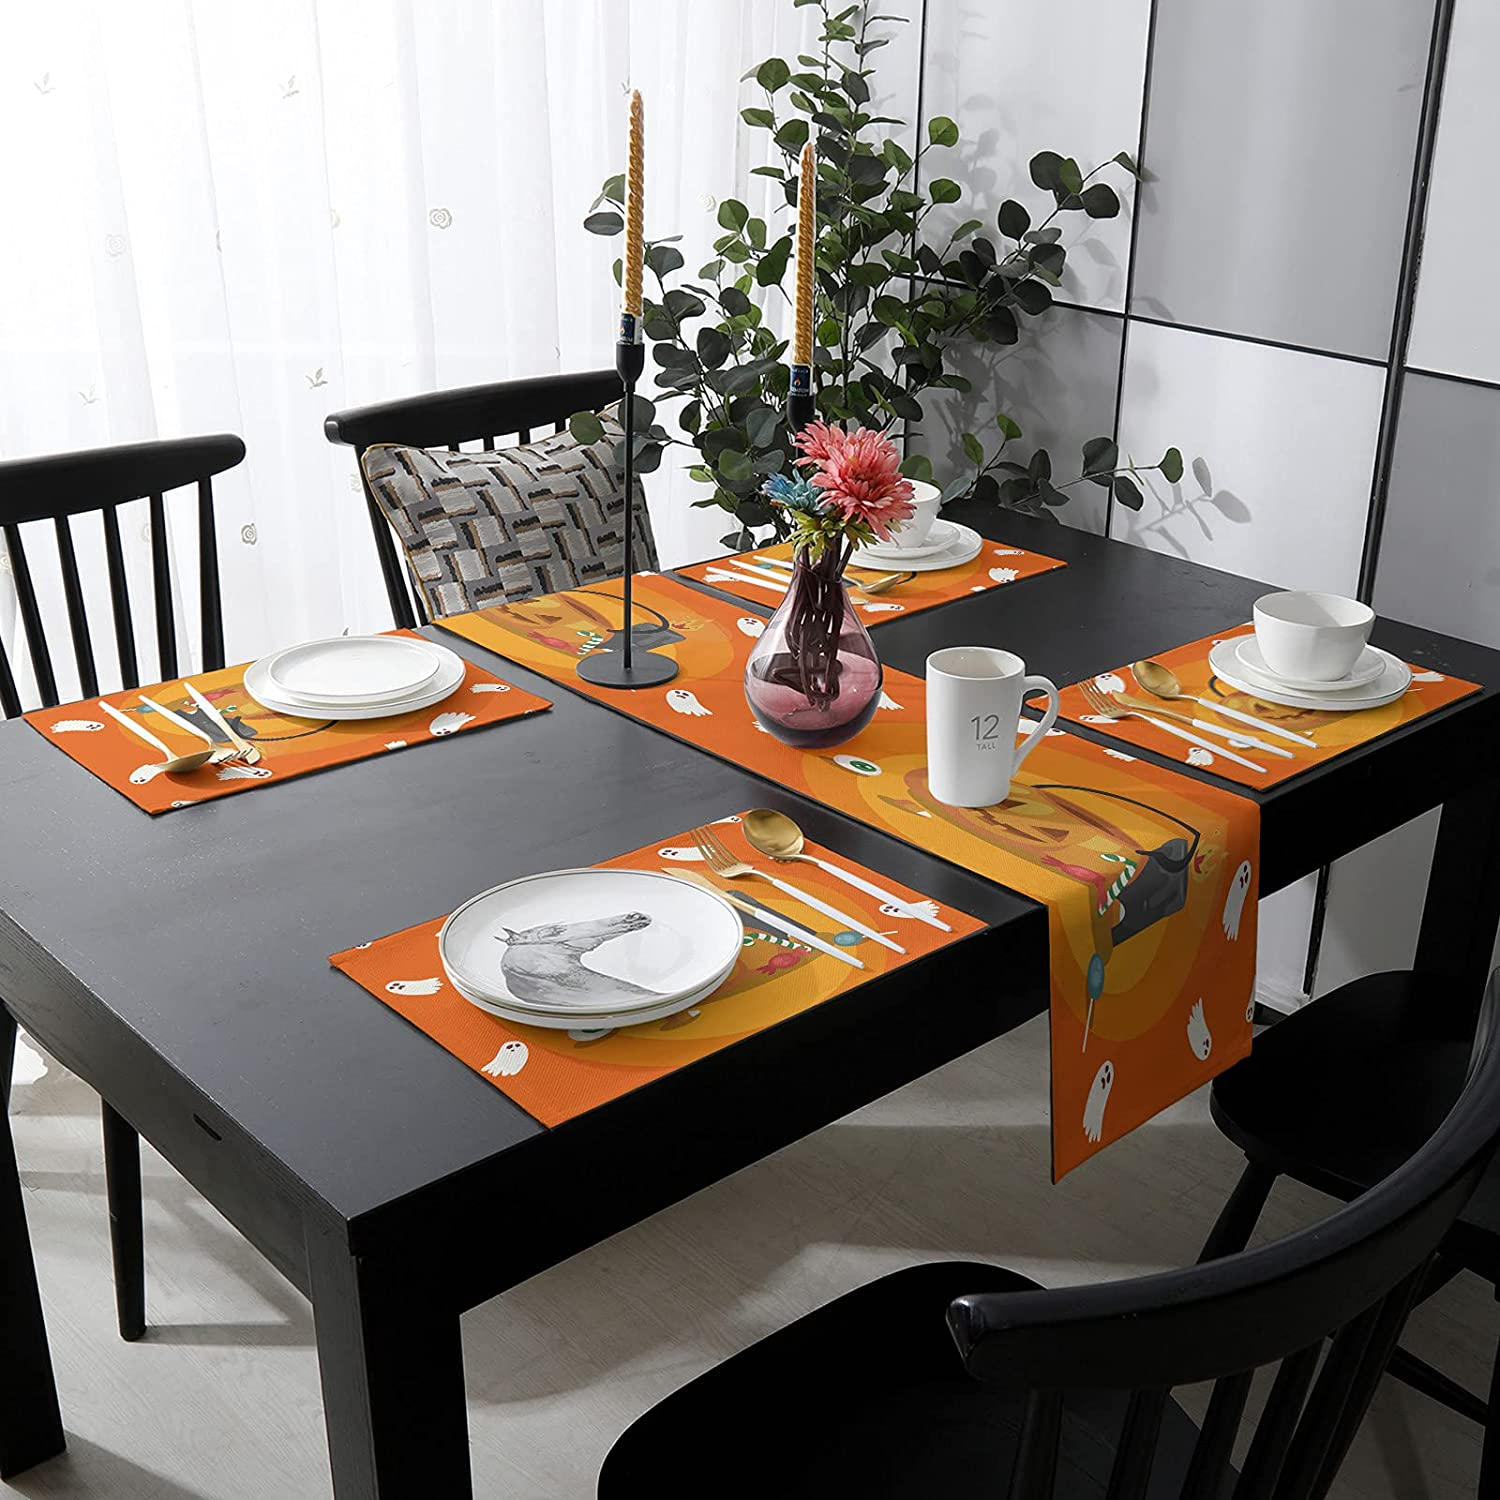 Womenfocus Genuine Free Shipping Outdoor Table Runner and Placemats Kitchen 1 year warranty Heat-Pr 4